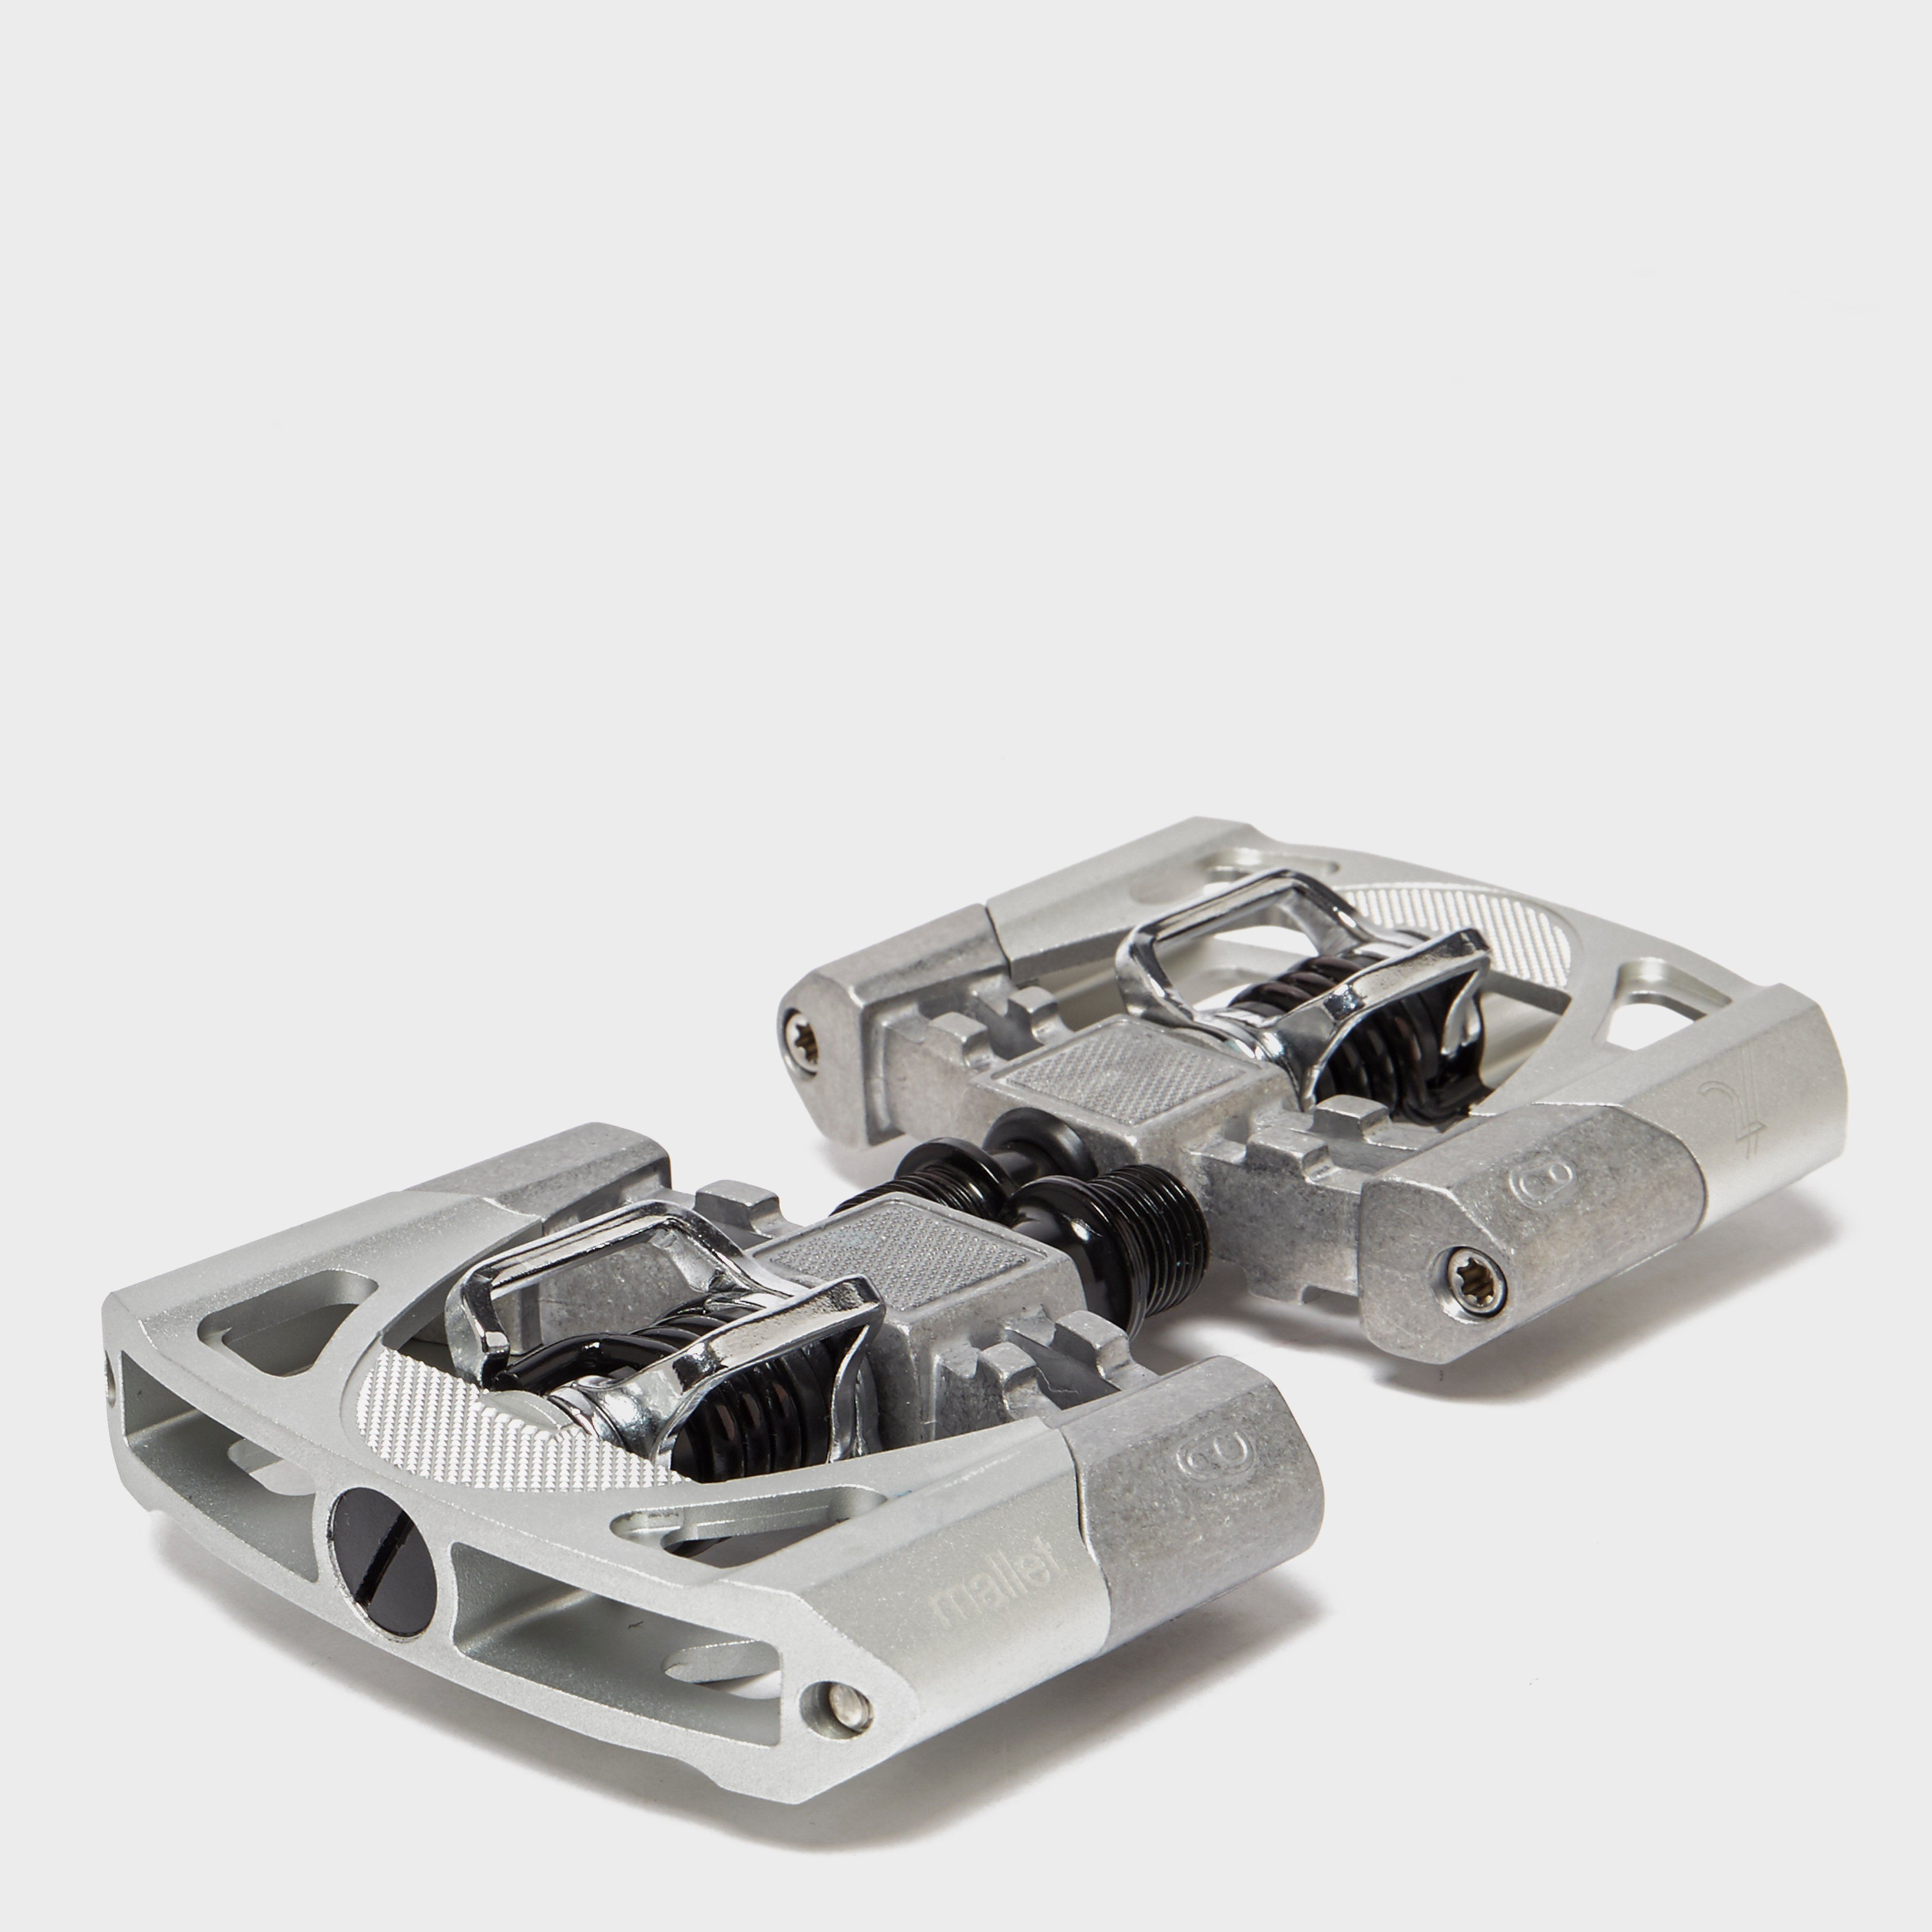 CRANKBROTHERS Mallet 2 Pedals